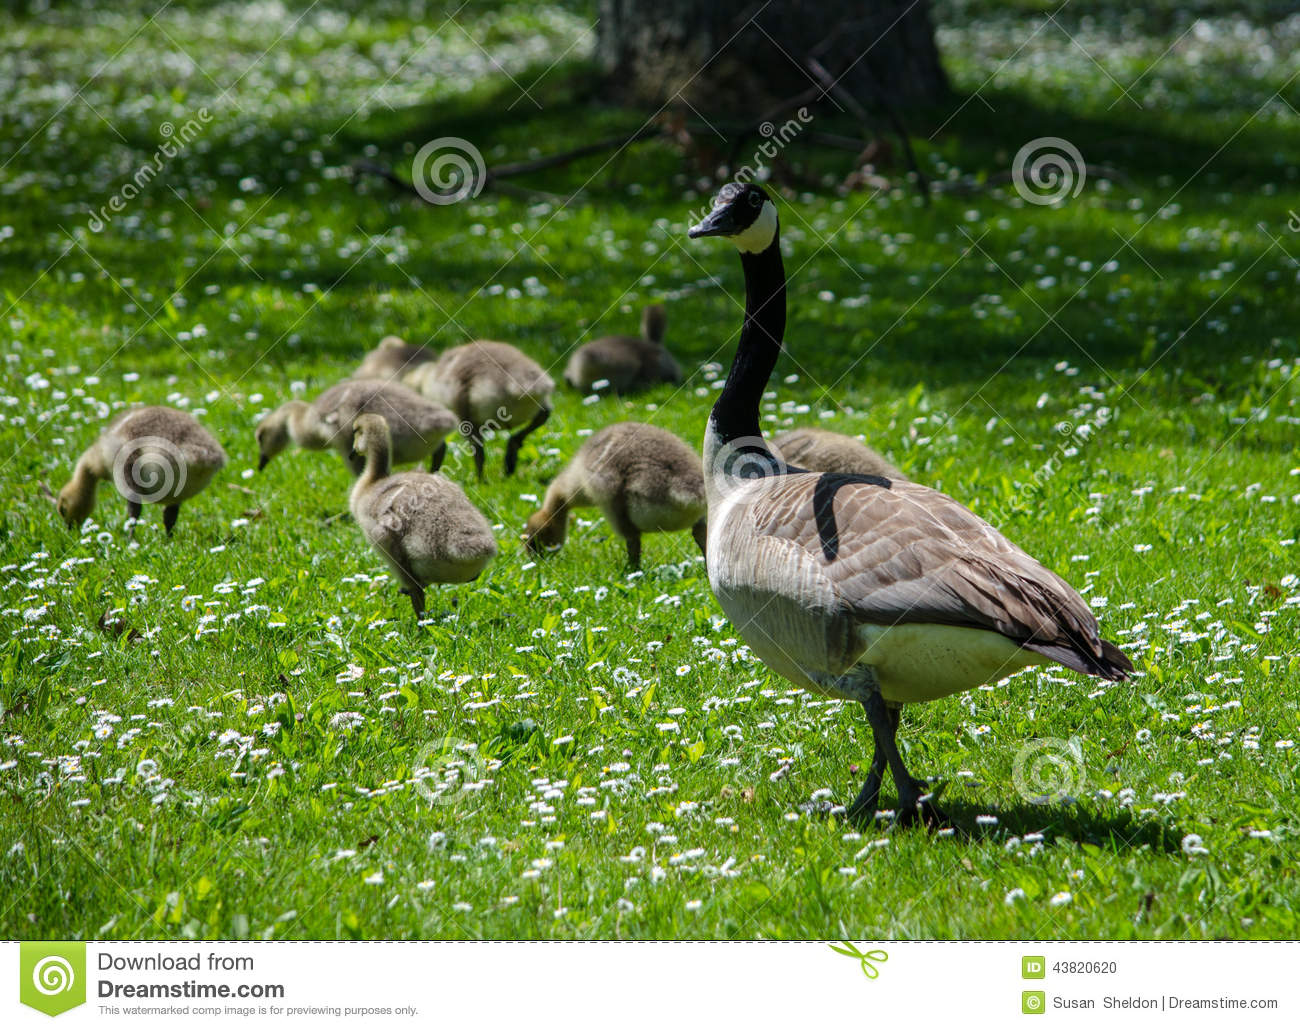 Mom And Baby Geese In A Field Of White Daisies Stock Photo.